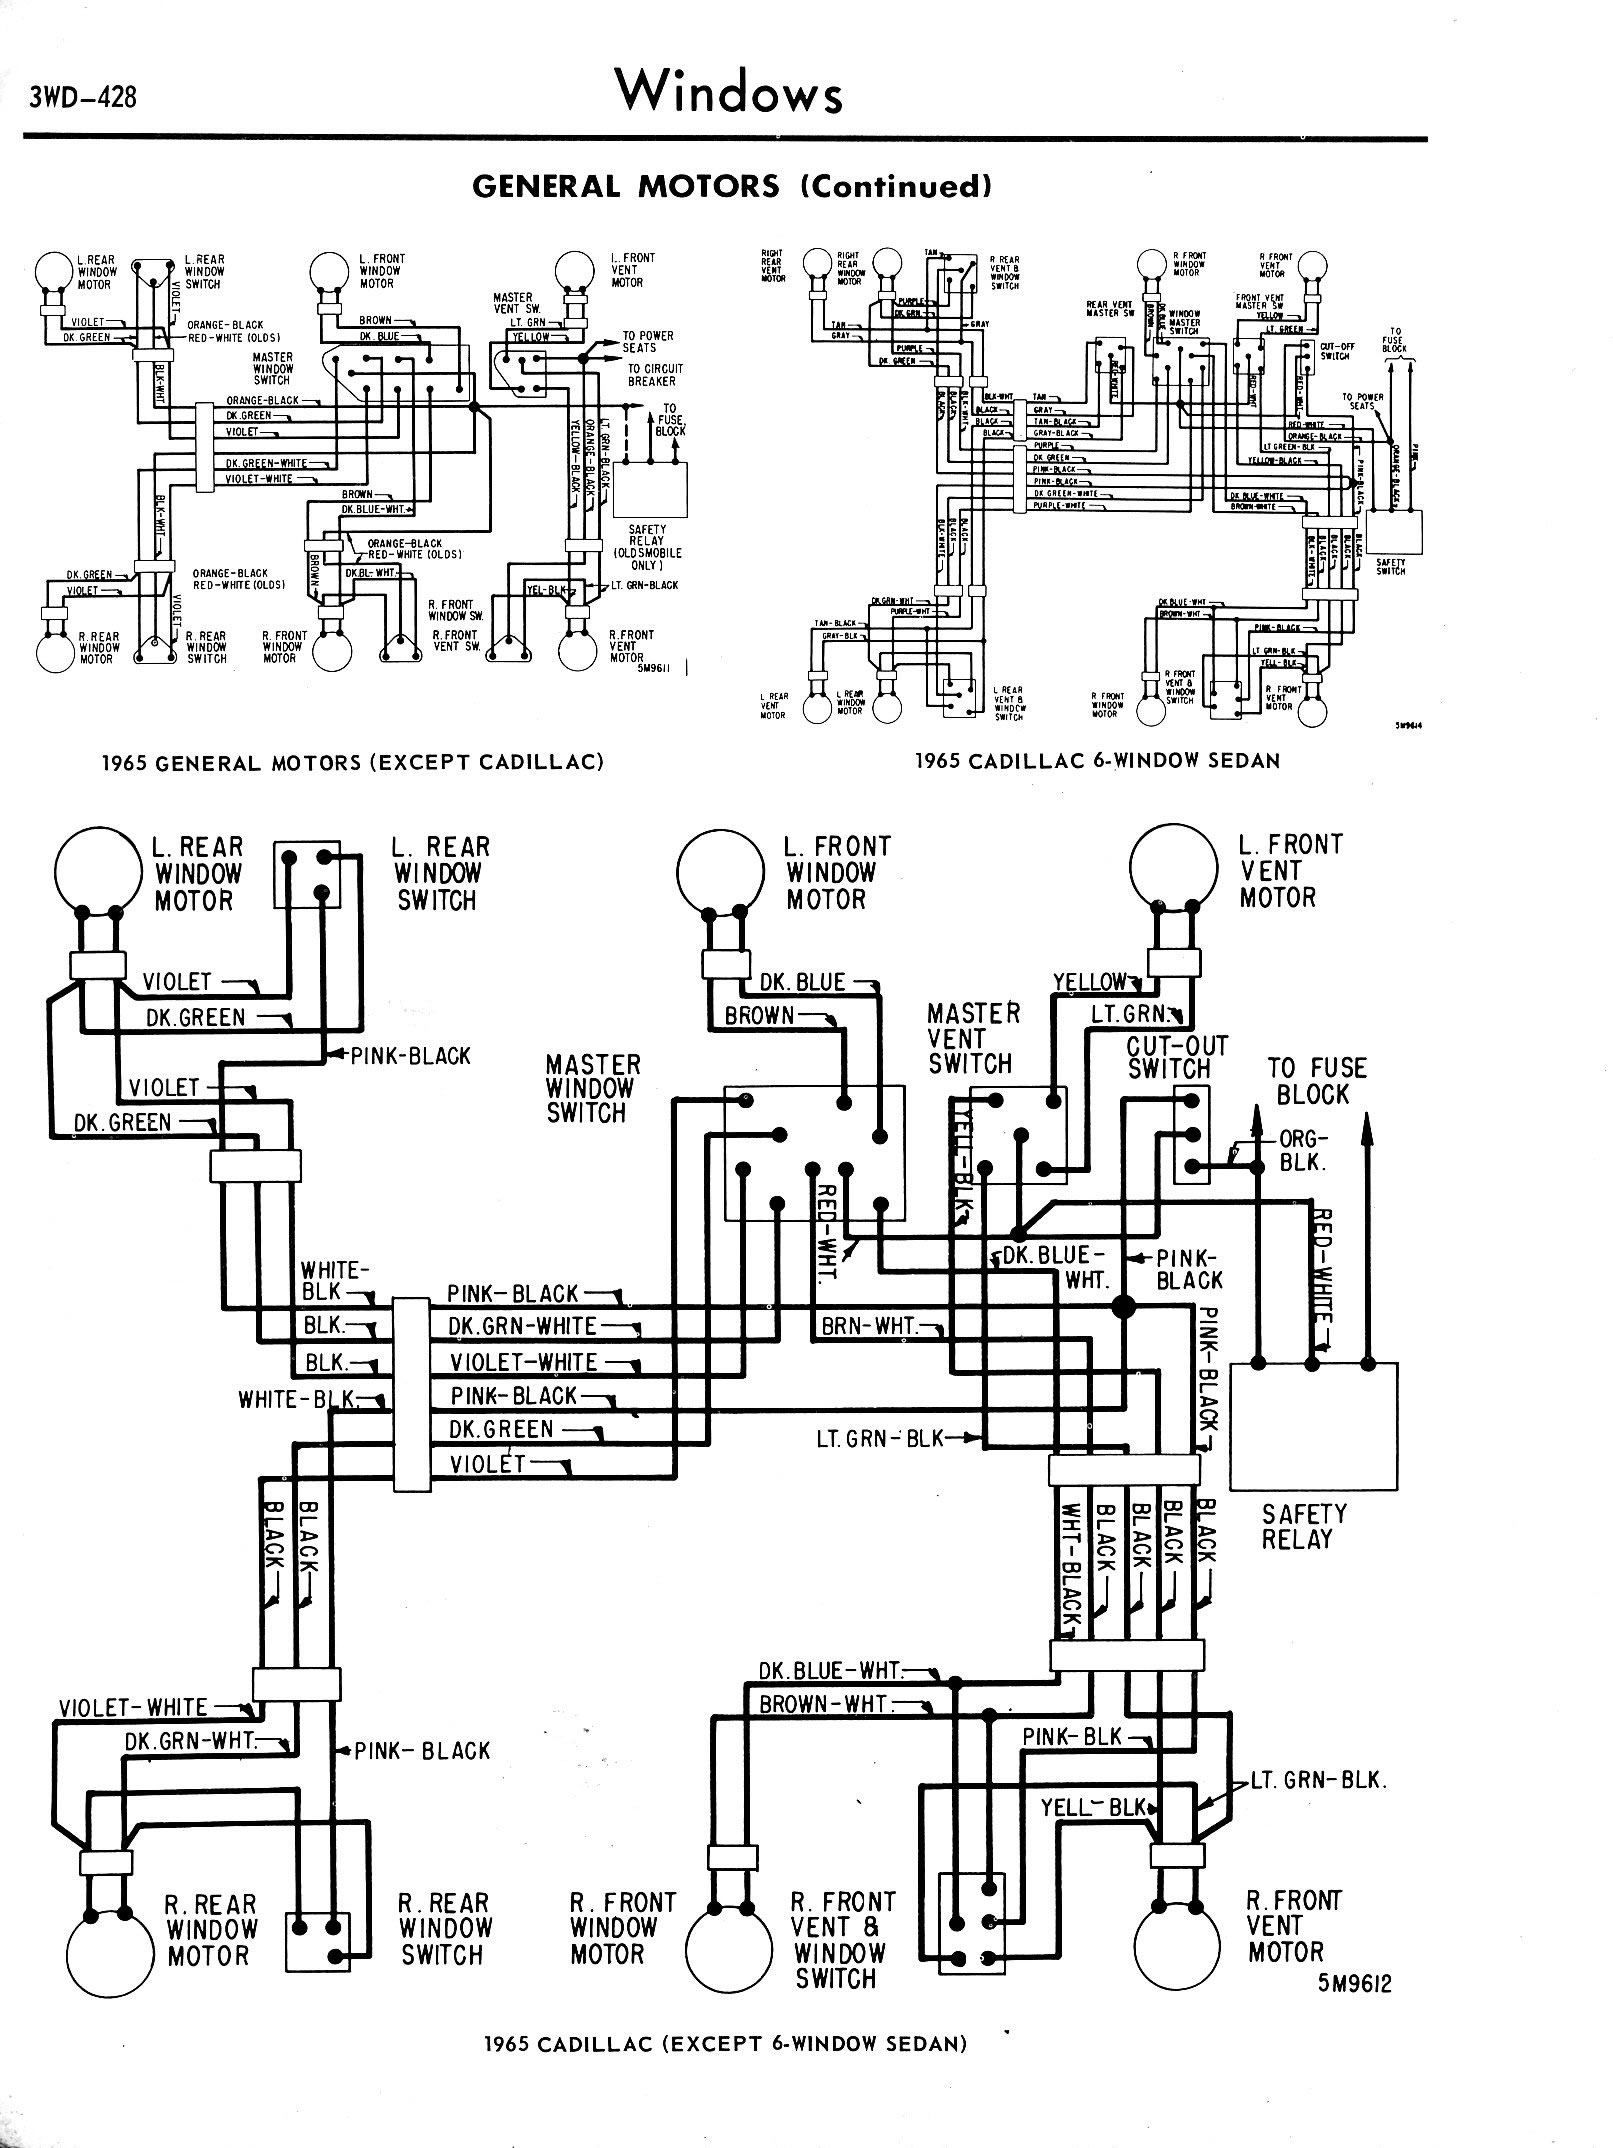 3WD 428_jpg chevy diagrams gm power window switch wiring diagram at n-0.co